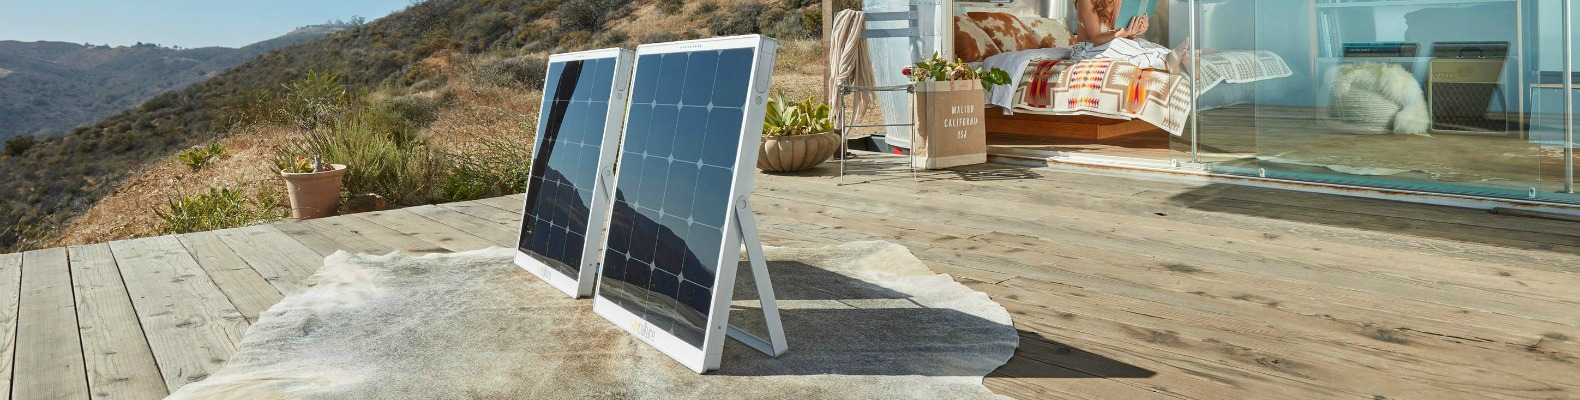 New solar panels with built-in batteries make off-grid living easy